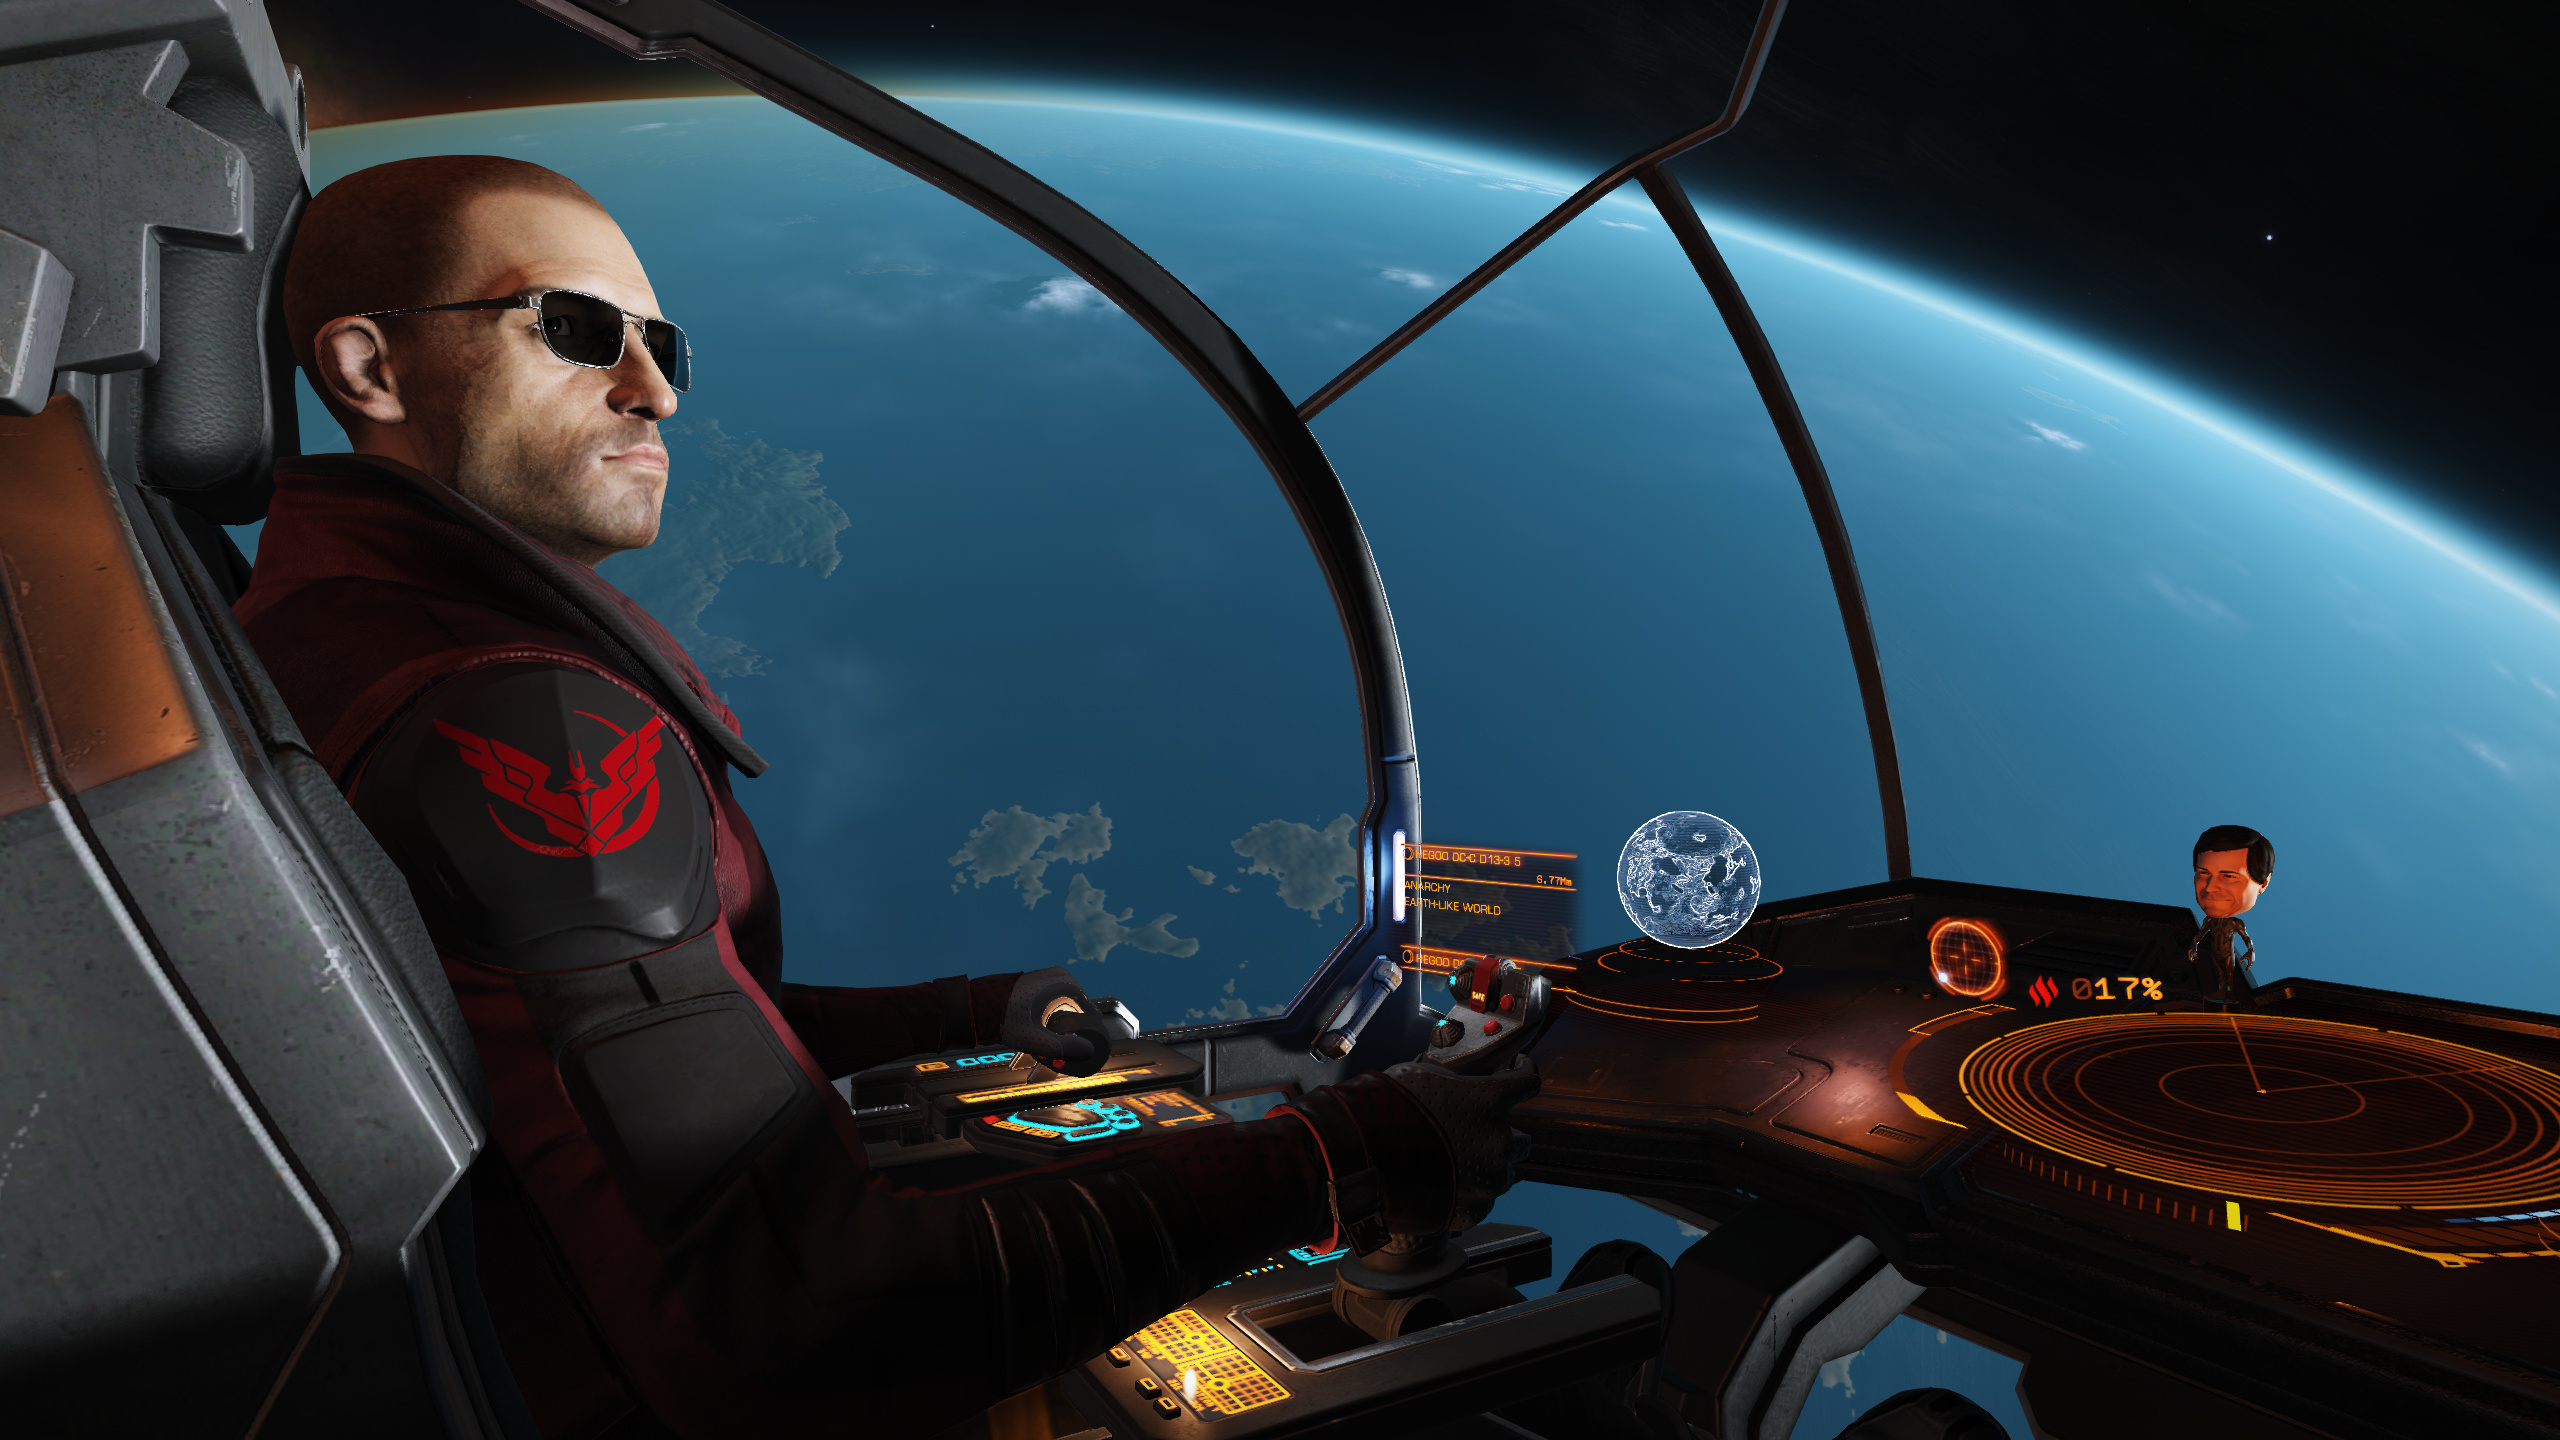 Elite: Dangerous Kickstarter Launched - Games - Quarter To Three Forums